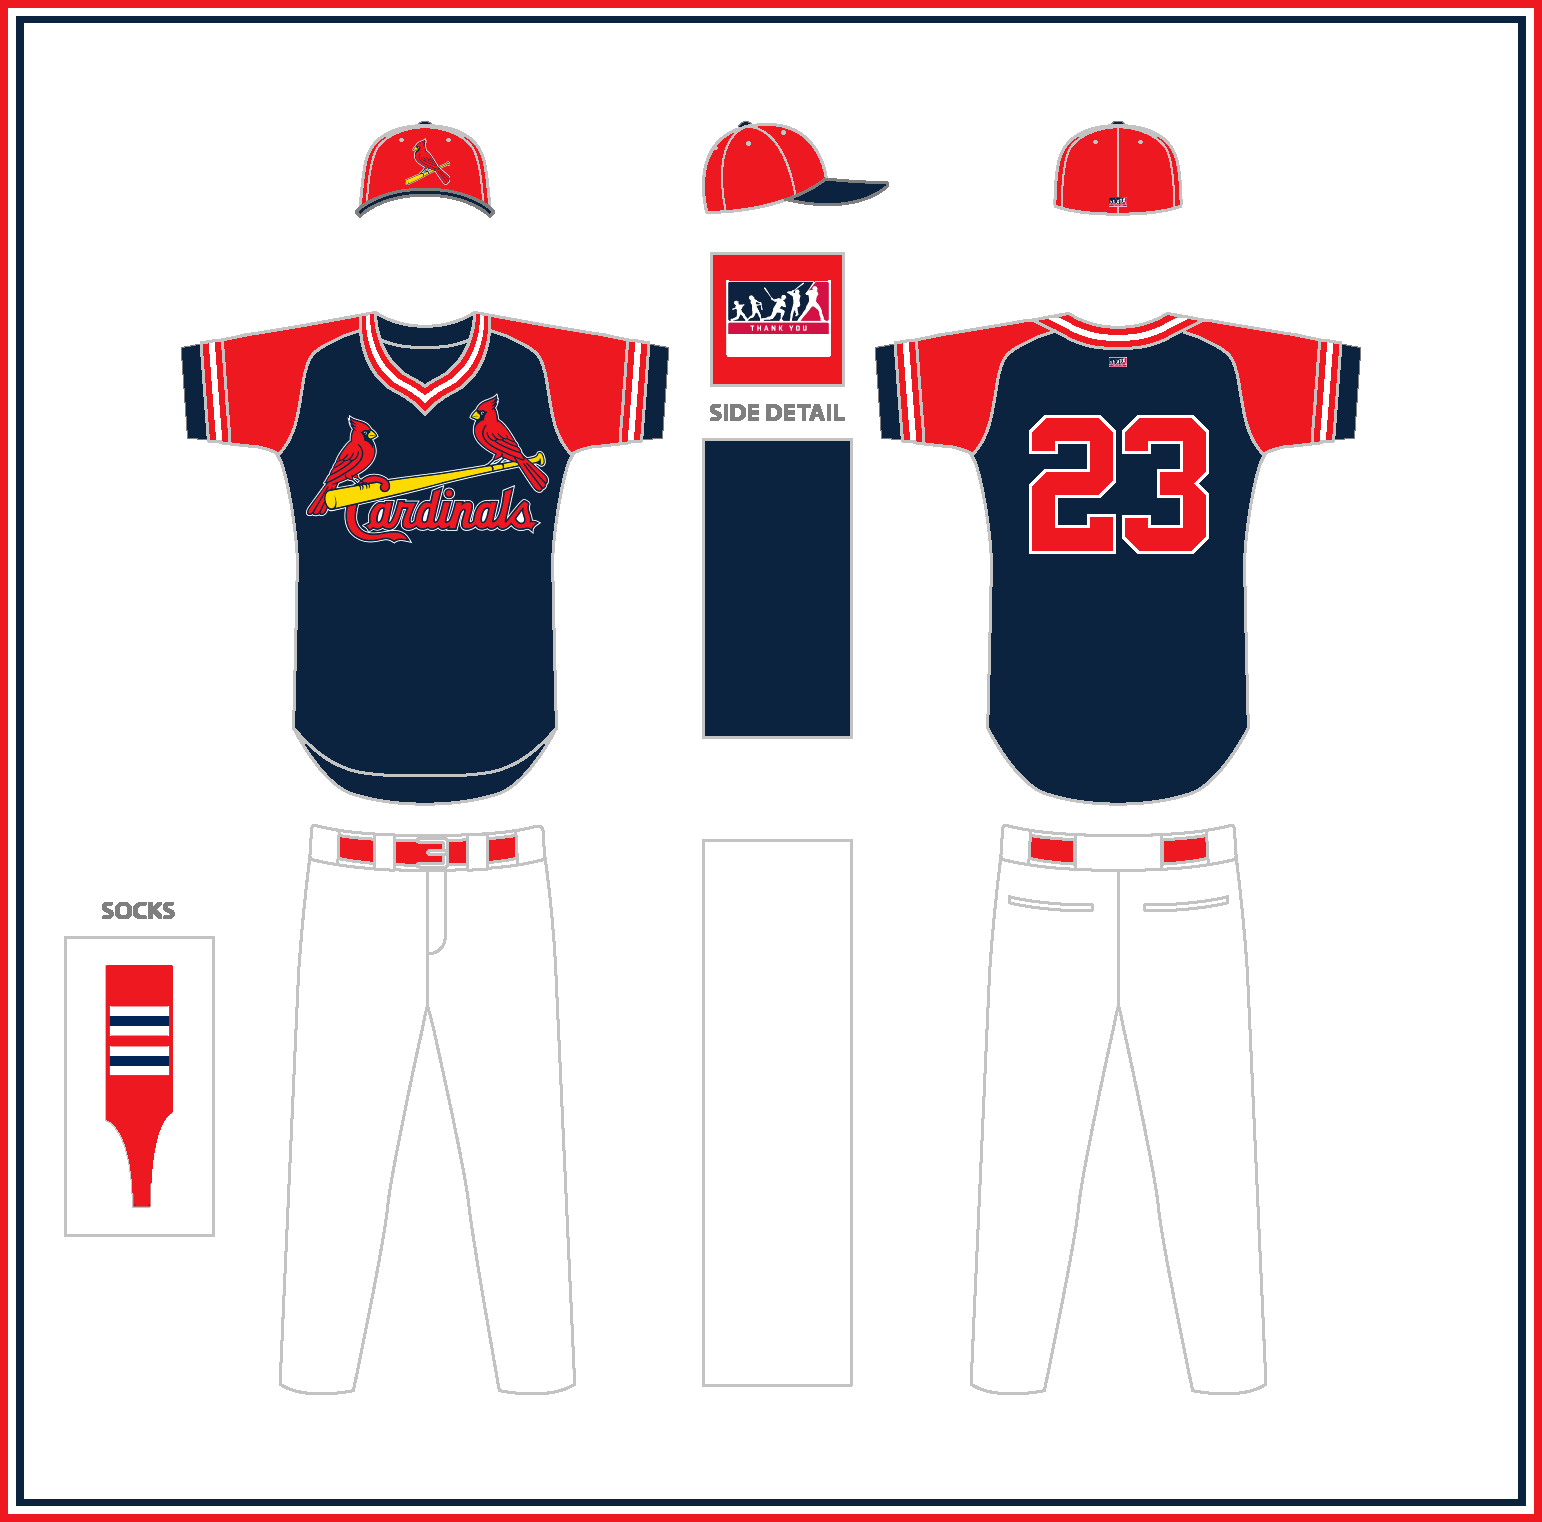 Cardinals_w_outlines.png